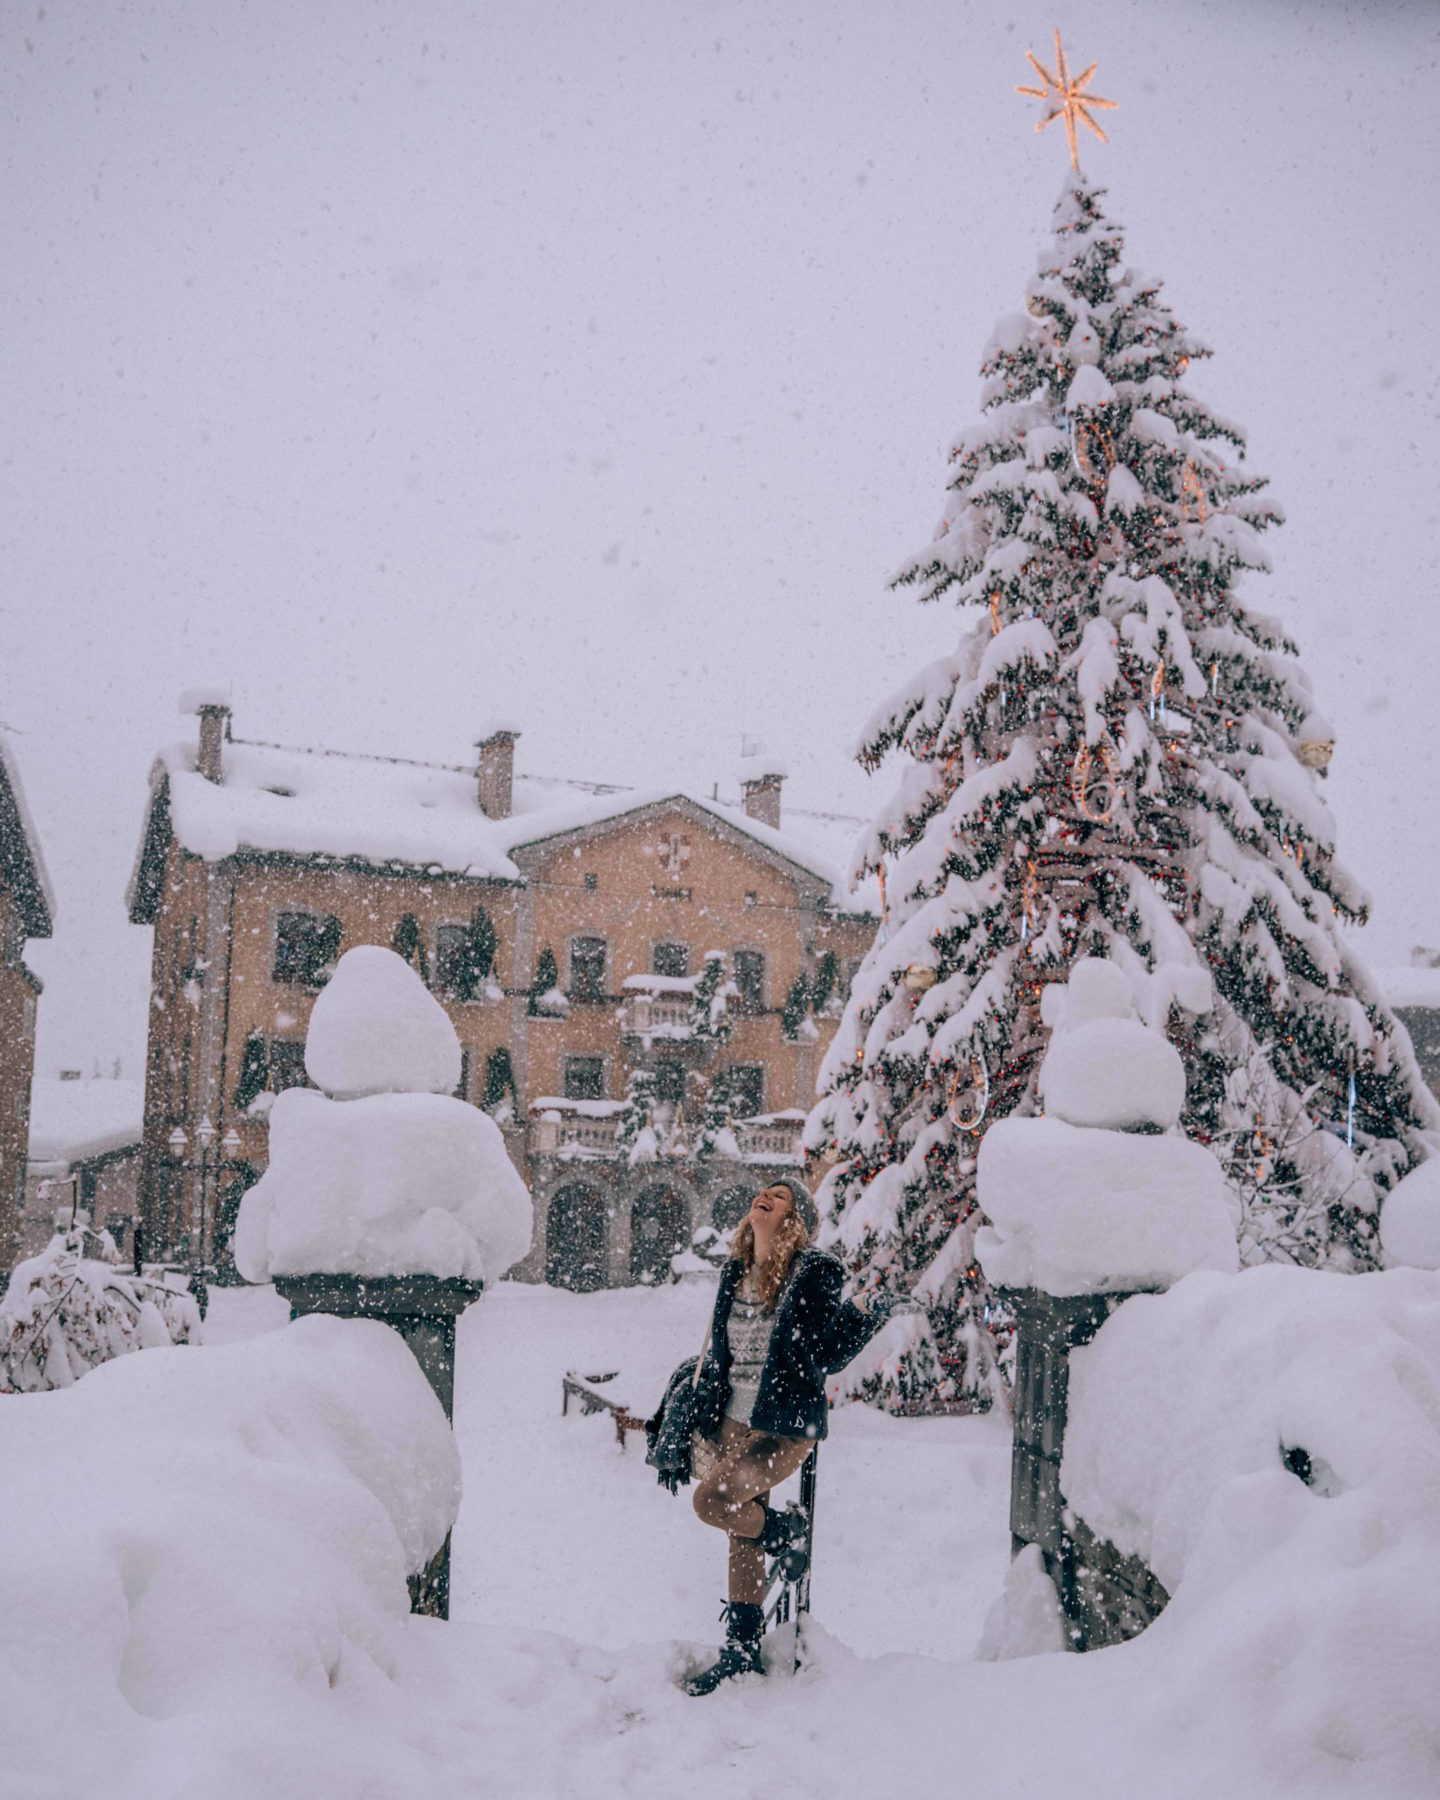 Playing under the snow in Megeve